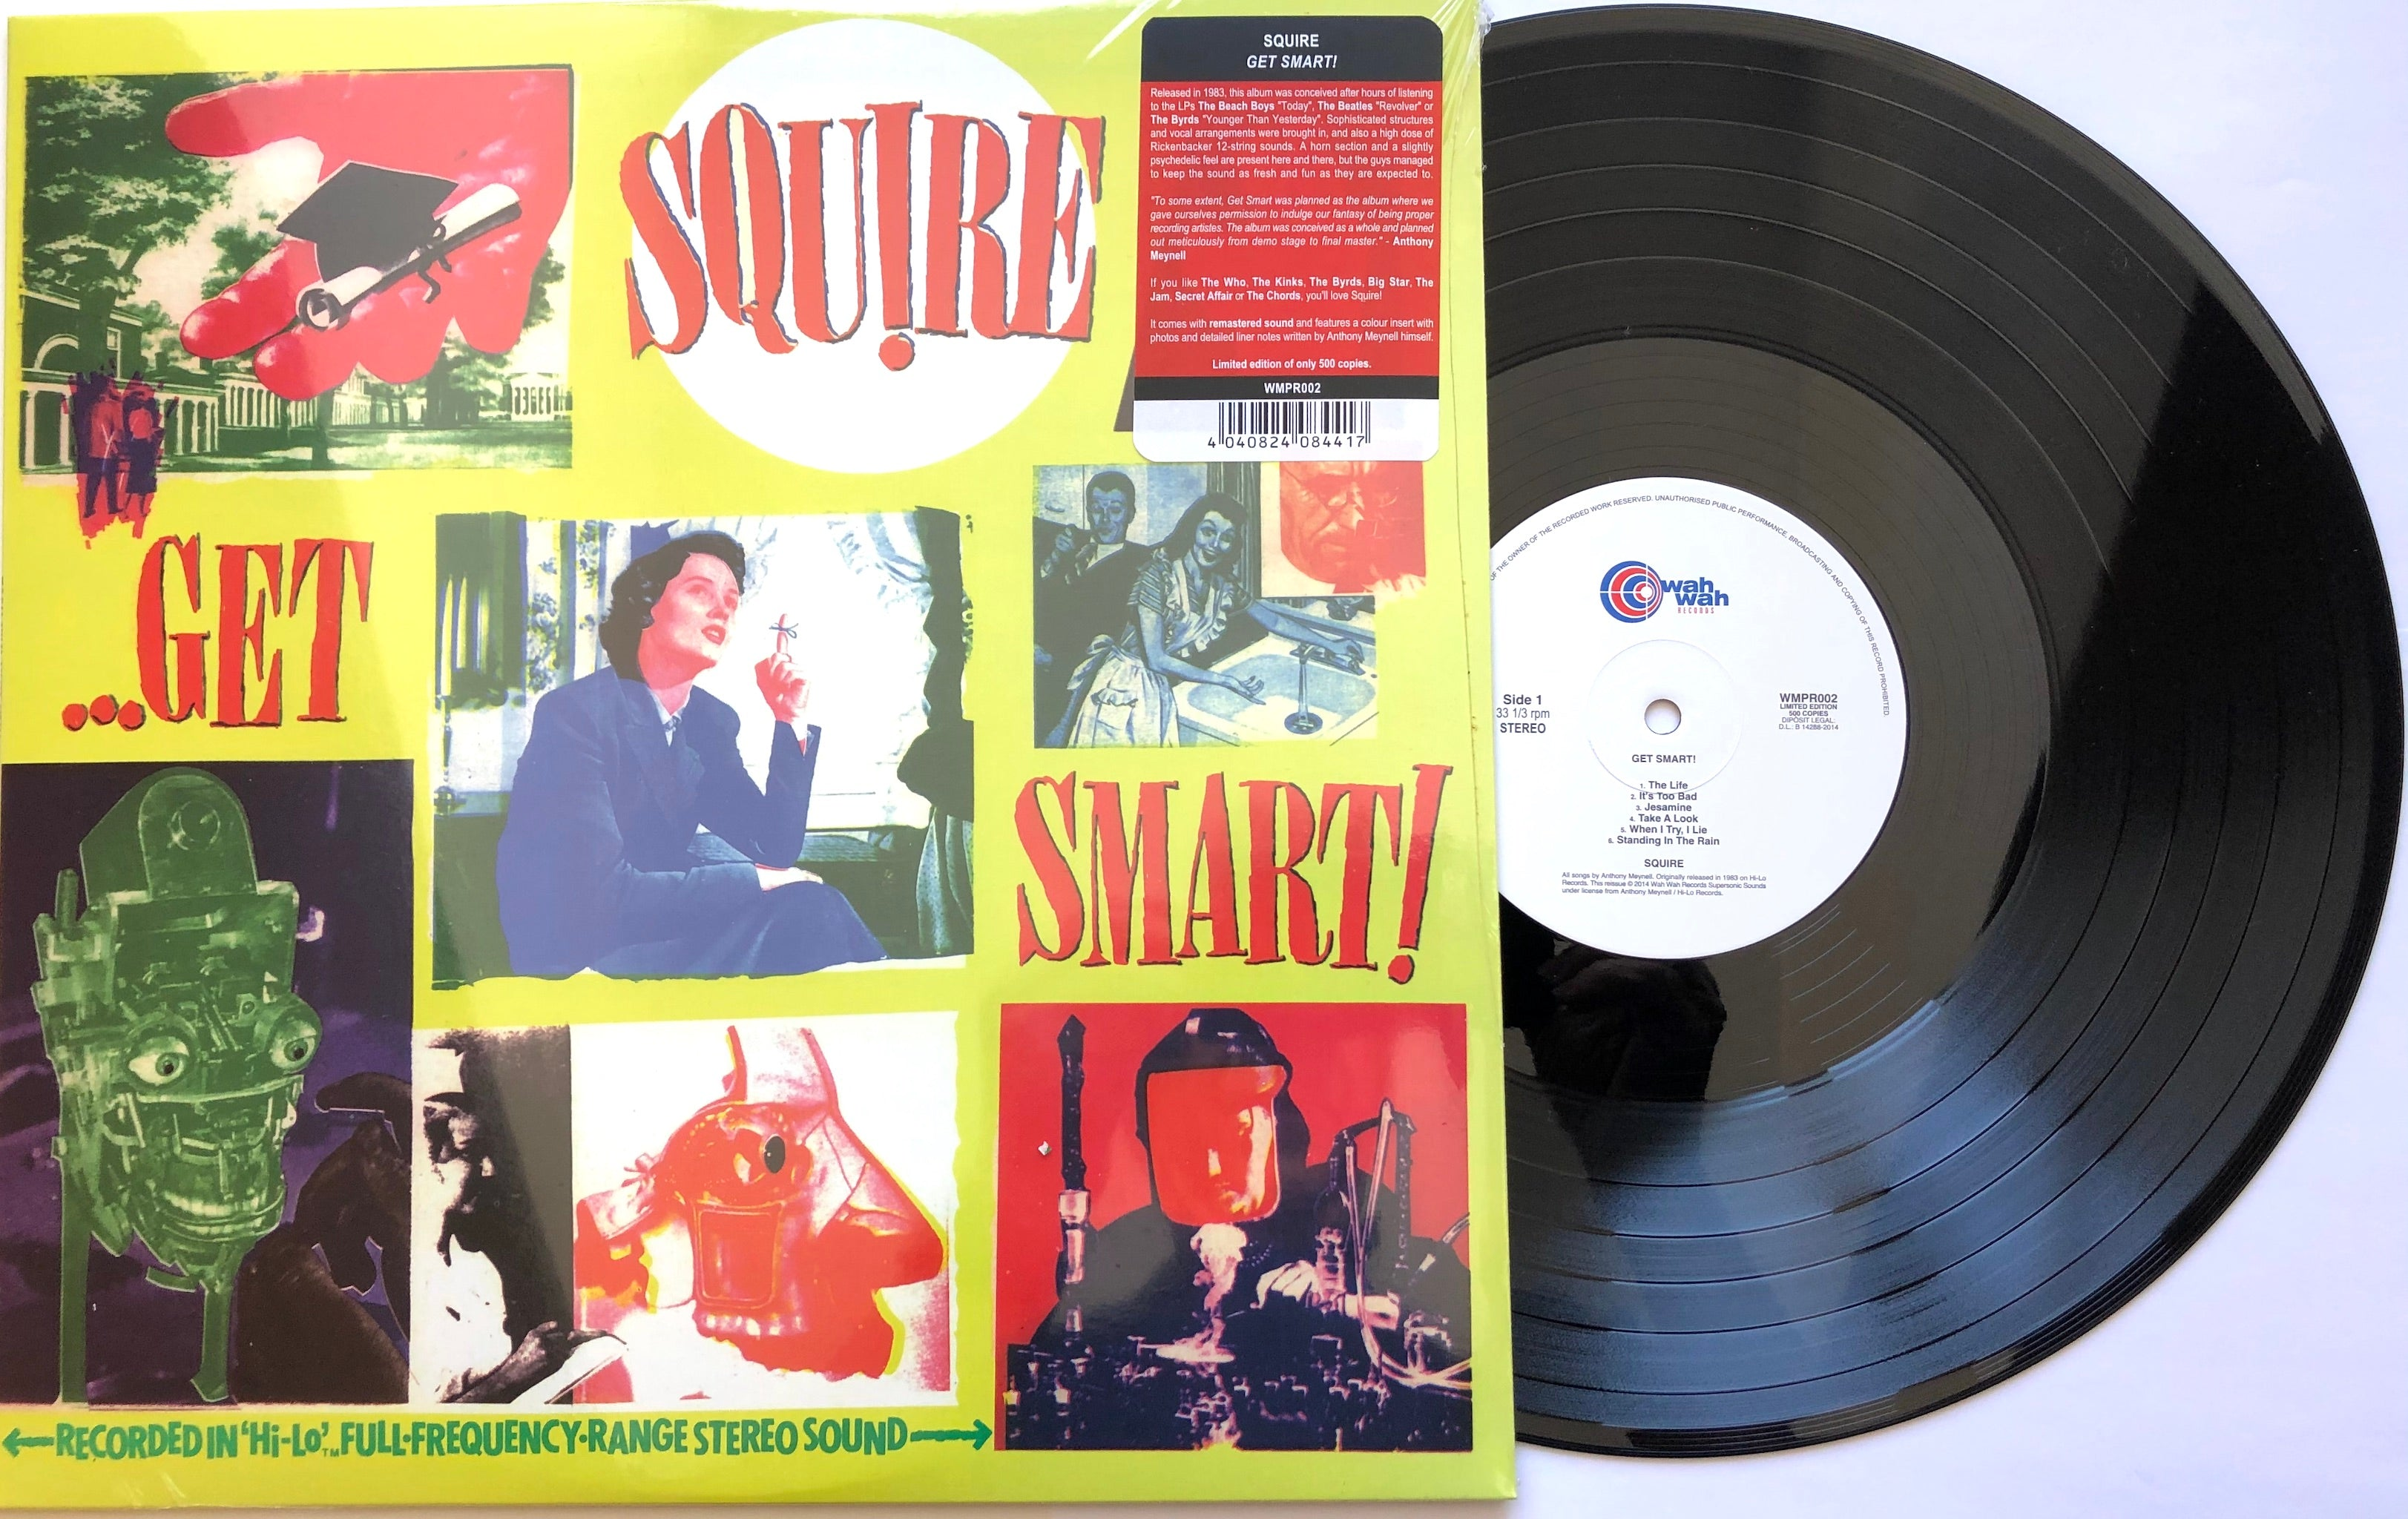 Squire - Get Smart! - with special insert